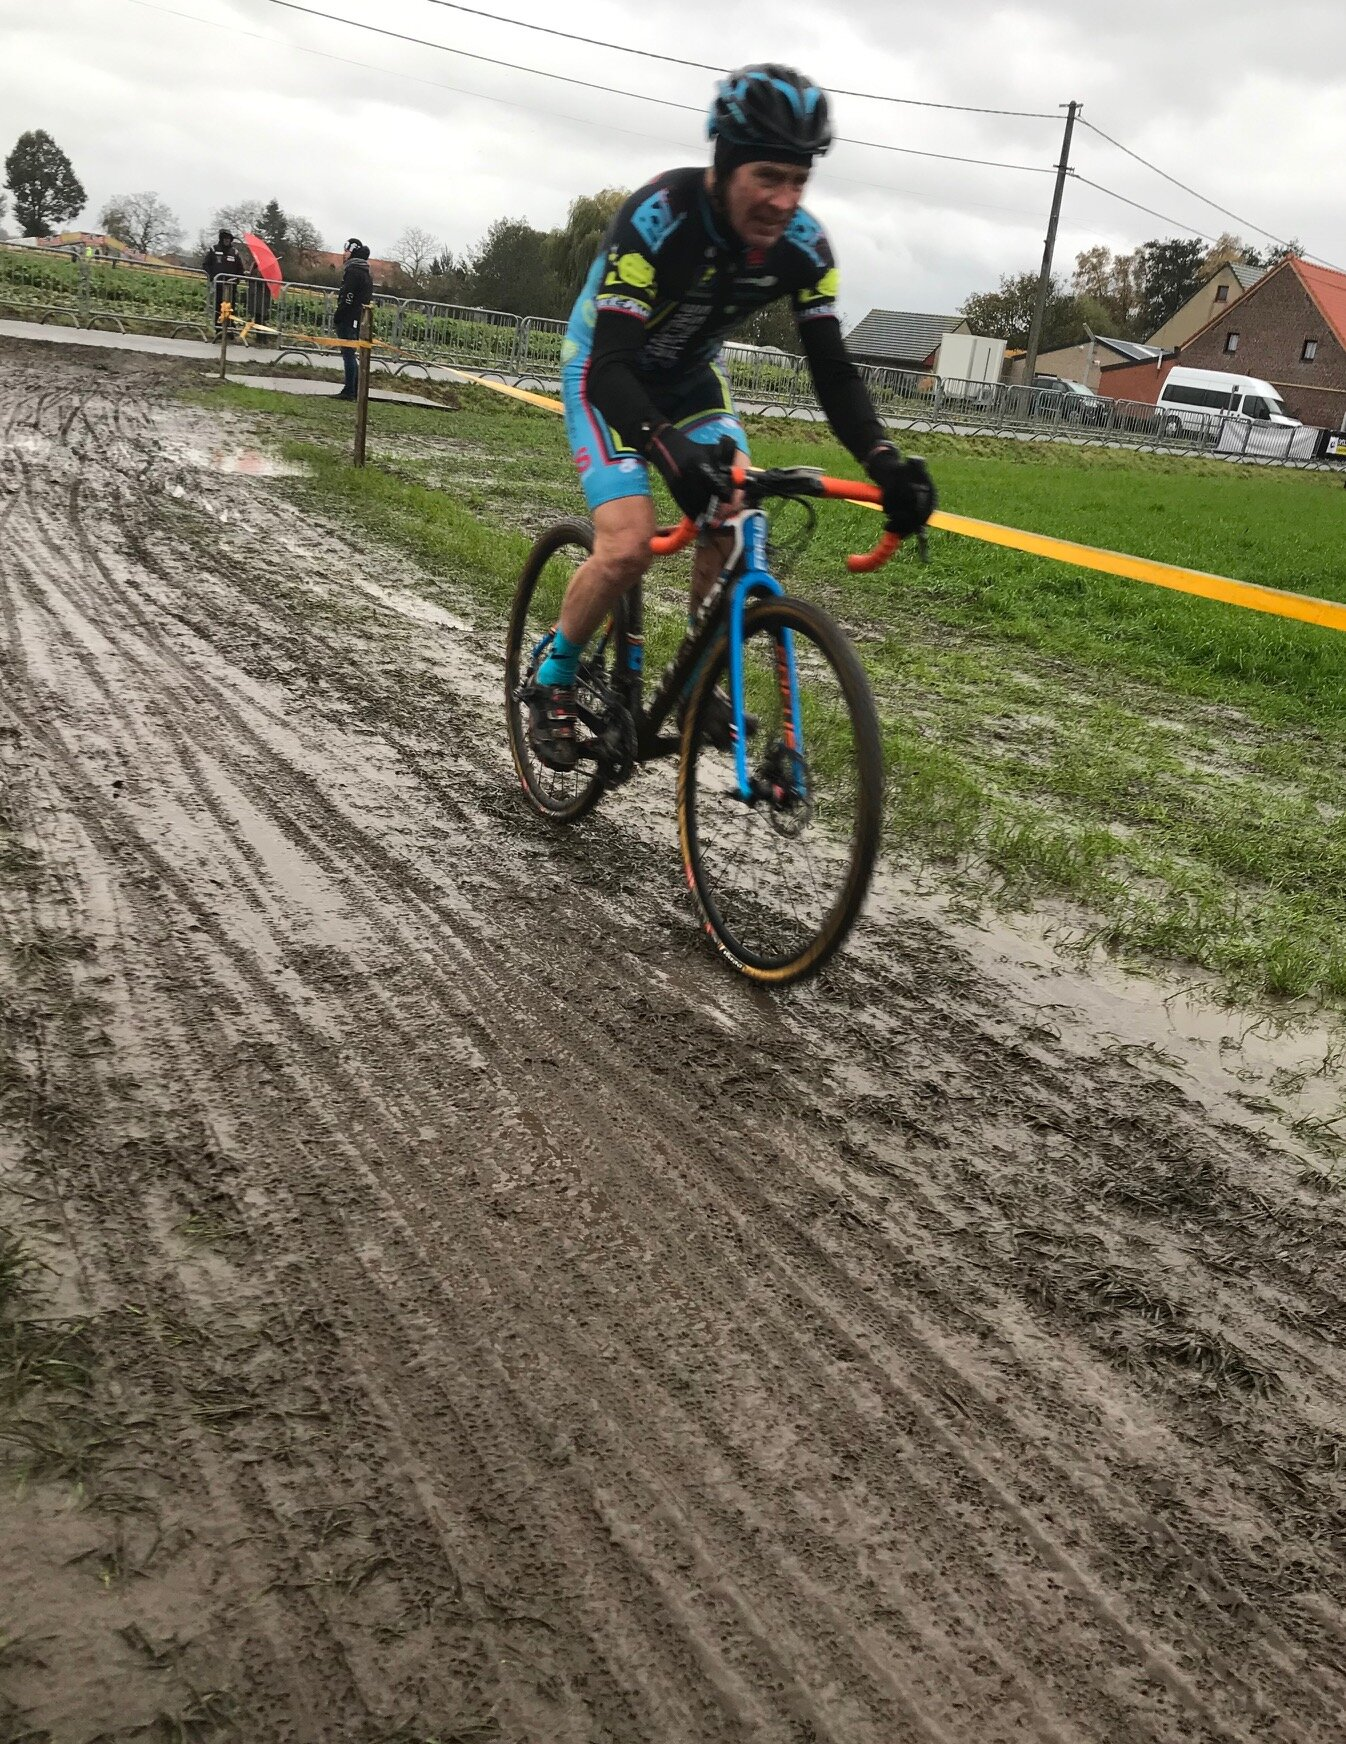 Flanders Cyclocross Championships @ Litchervelde @ 11 Nov - Mike Lawson leaves the finishing straight behind, turns left and begins lap 2 in the Flanders mud